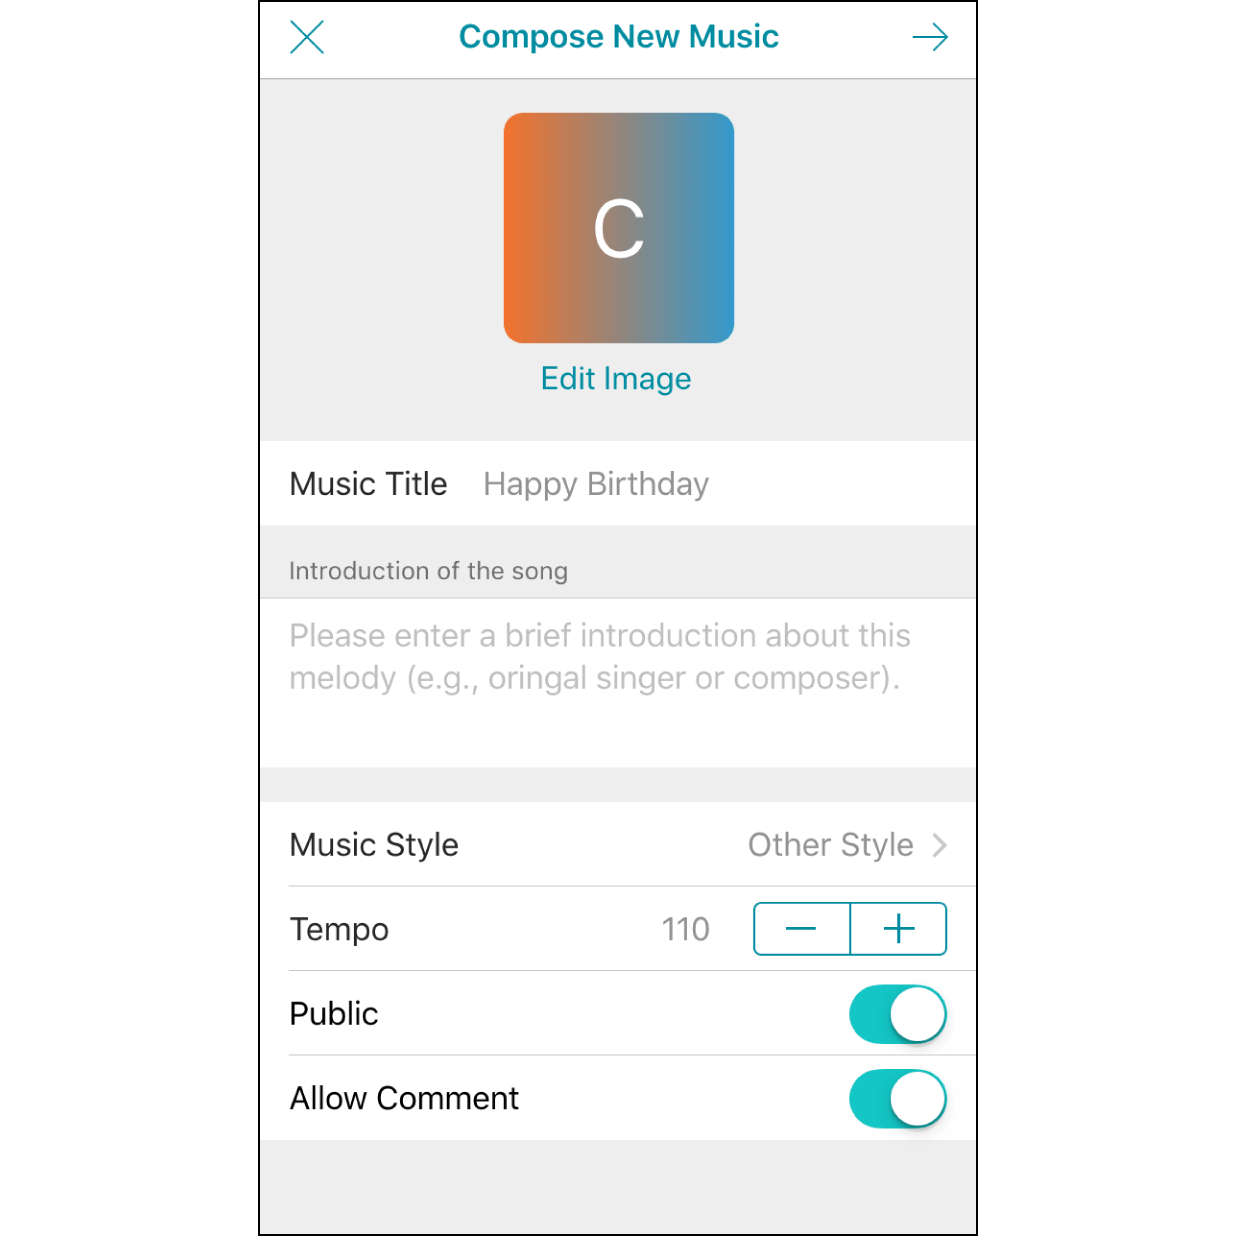 """Edit Melody InformationYou can edit a cover photo and enter music related information. Our default is to save your melody in private mode. Switching it to """"Public"""" allows you to share it with others."""